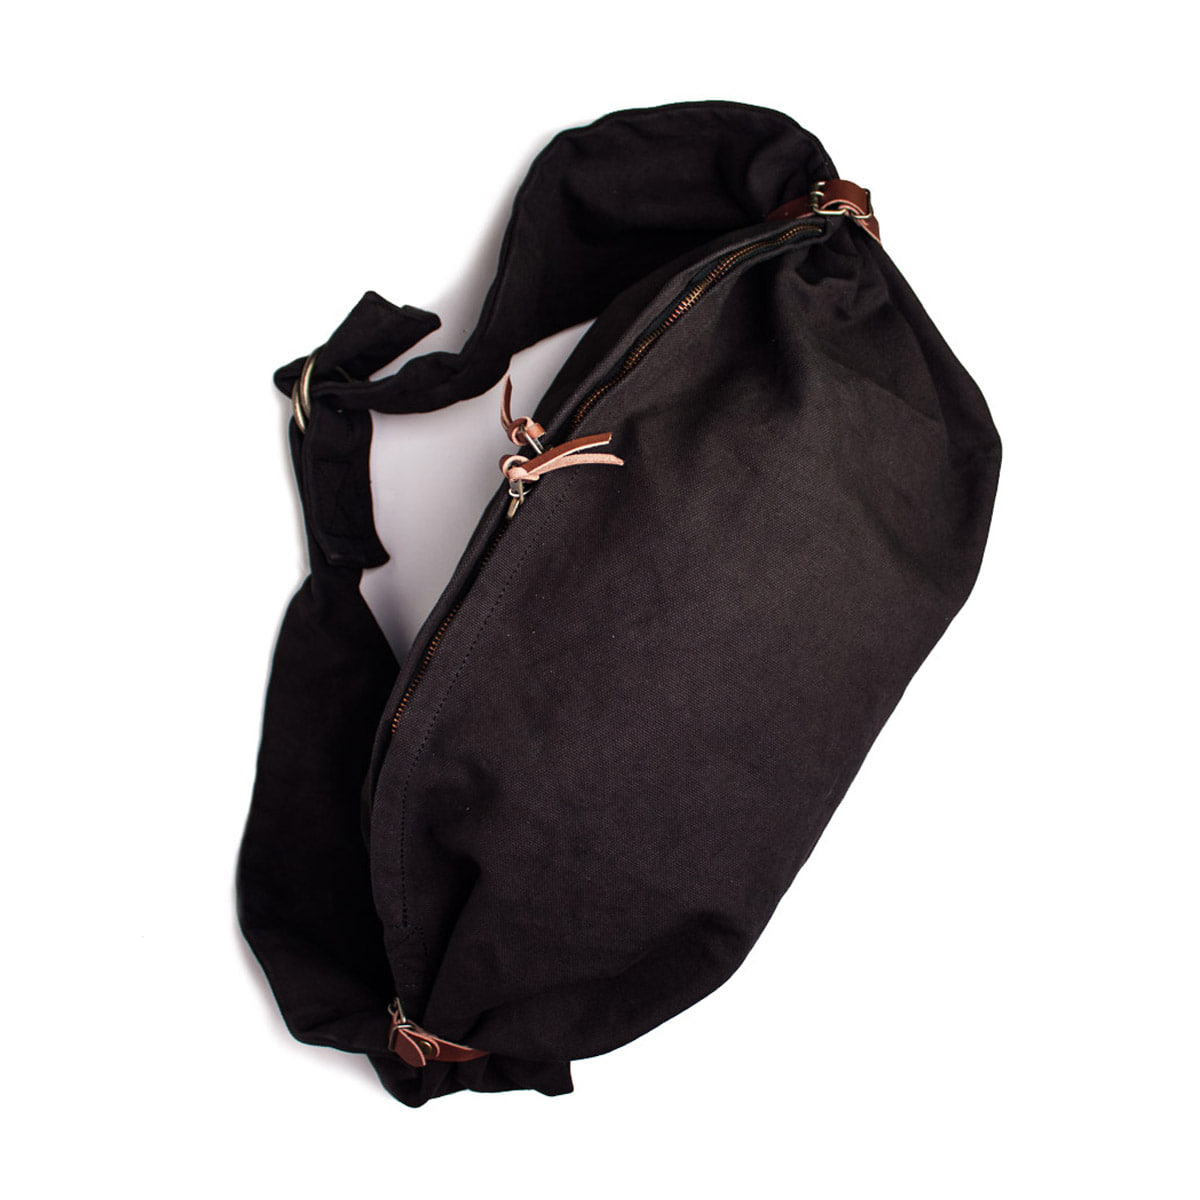 [KAPITAL] SAIL CLOTH LITTLE SNUFKIN BAG 'BLACK'